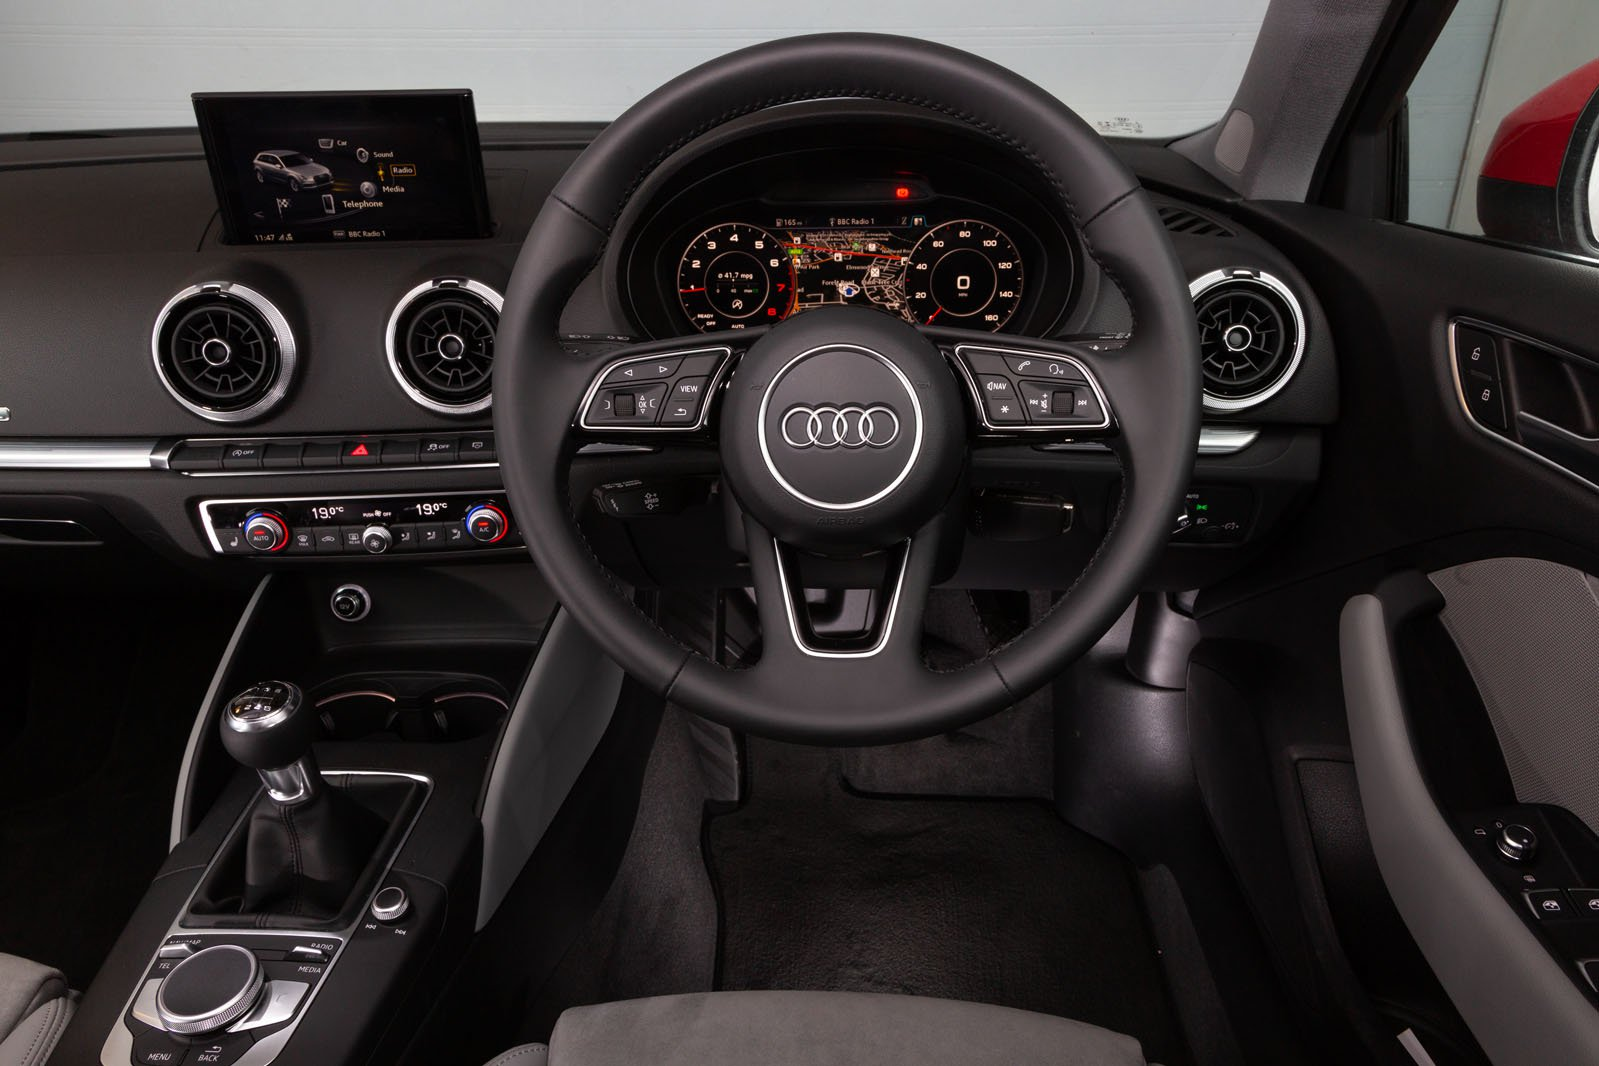 Audi A3 Interior, Sat Nav, Dashboard | What Car?